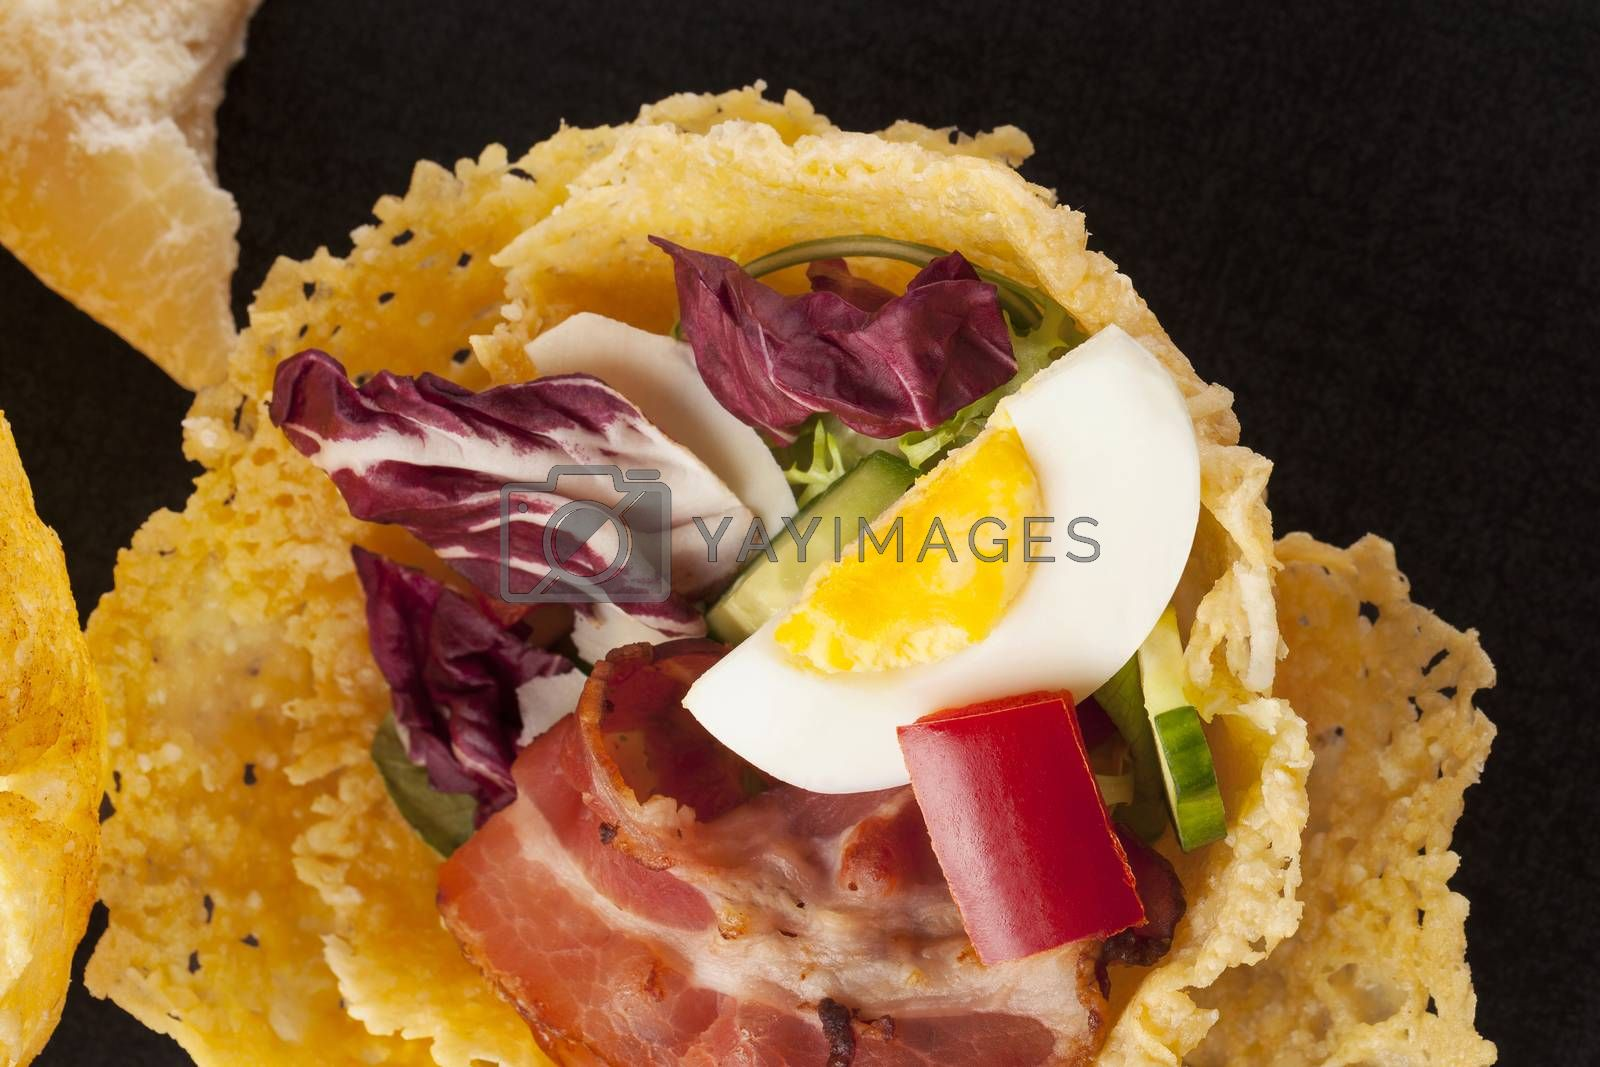 Parmigiano cheese basket filled with bacon and fresh vegetable. Culinary cheese eating.